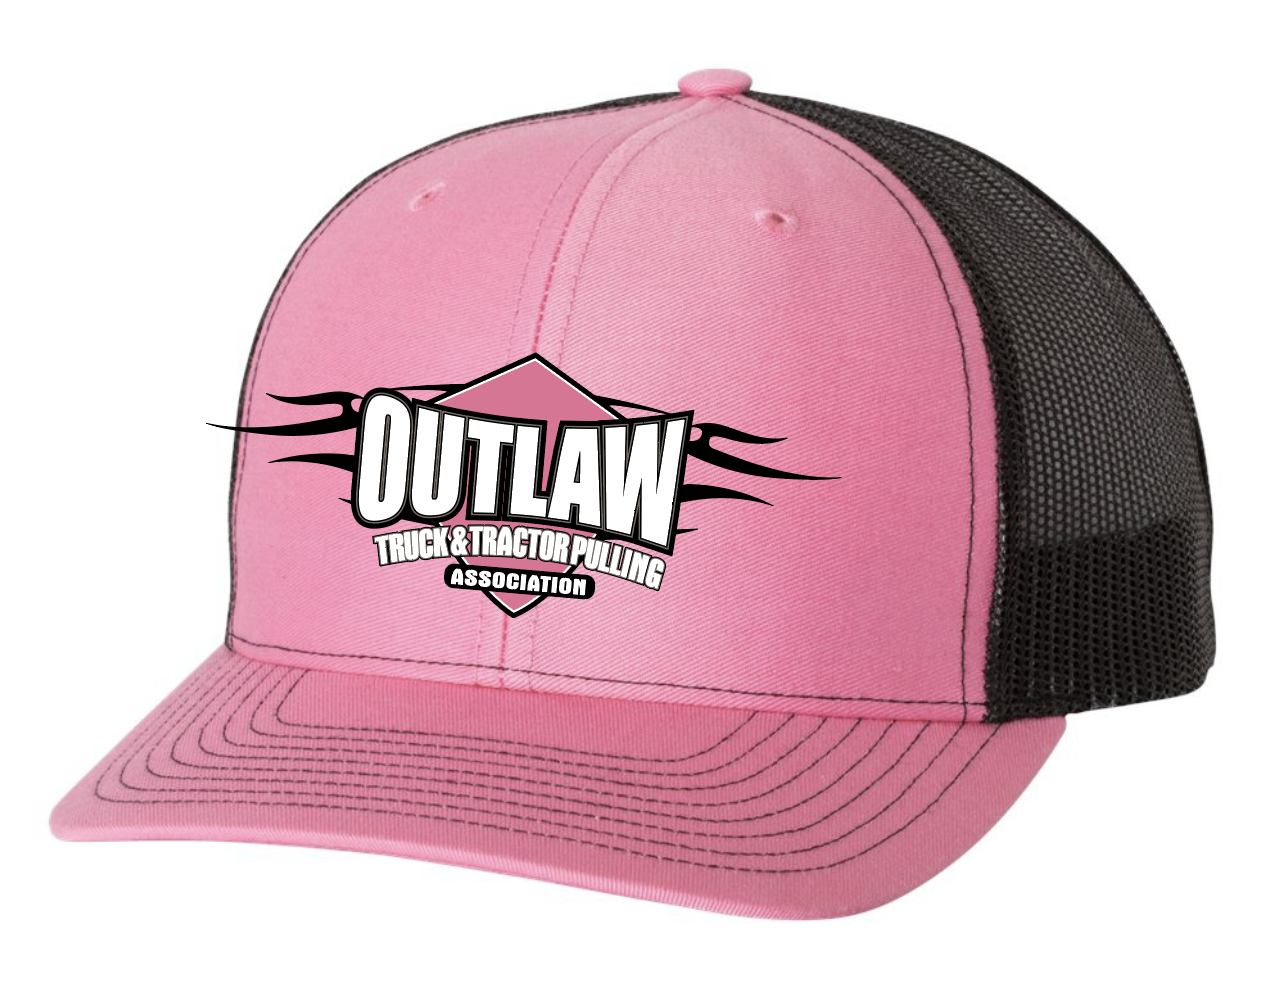 Ladies Black and Pink Hat - Outlaw Truck and Tractor Pulling Association 3412cfd15f79